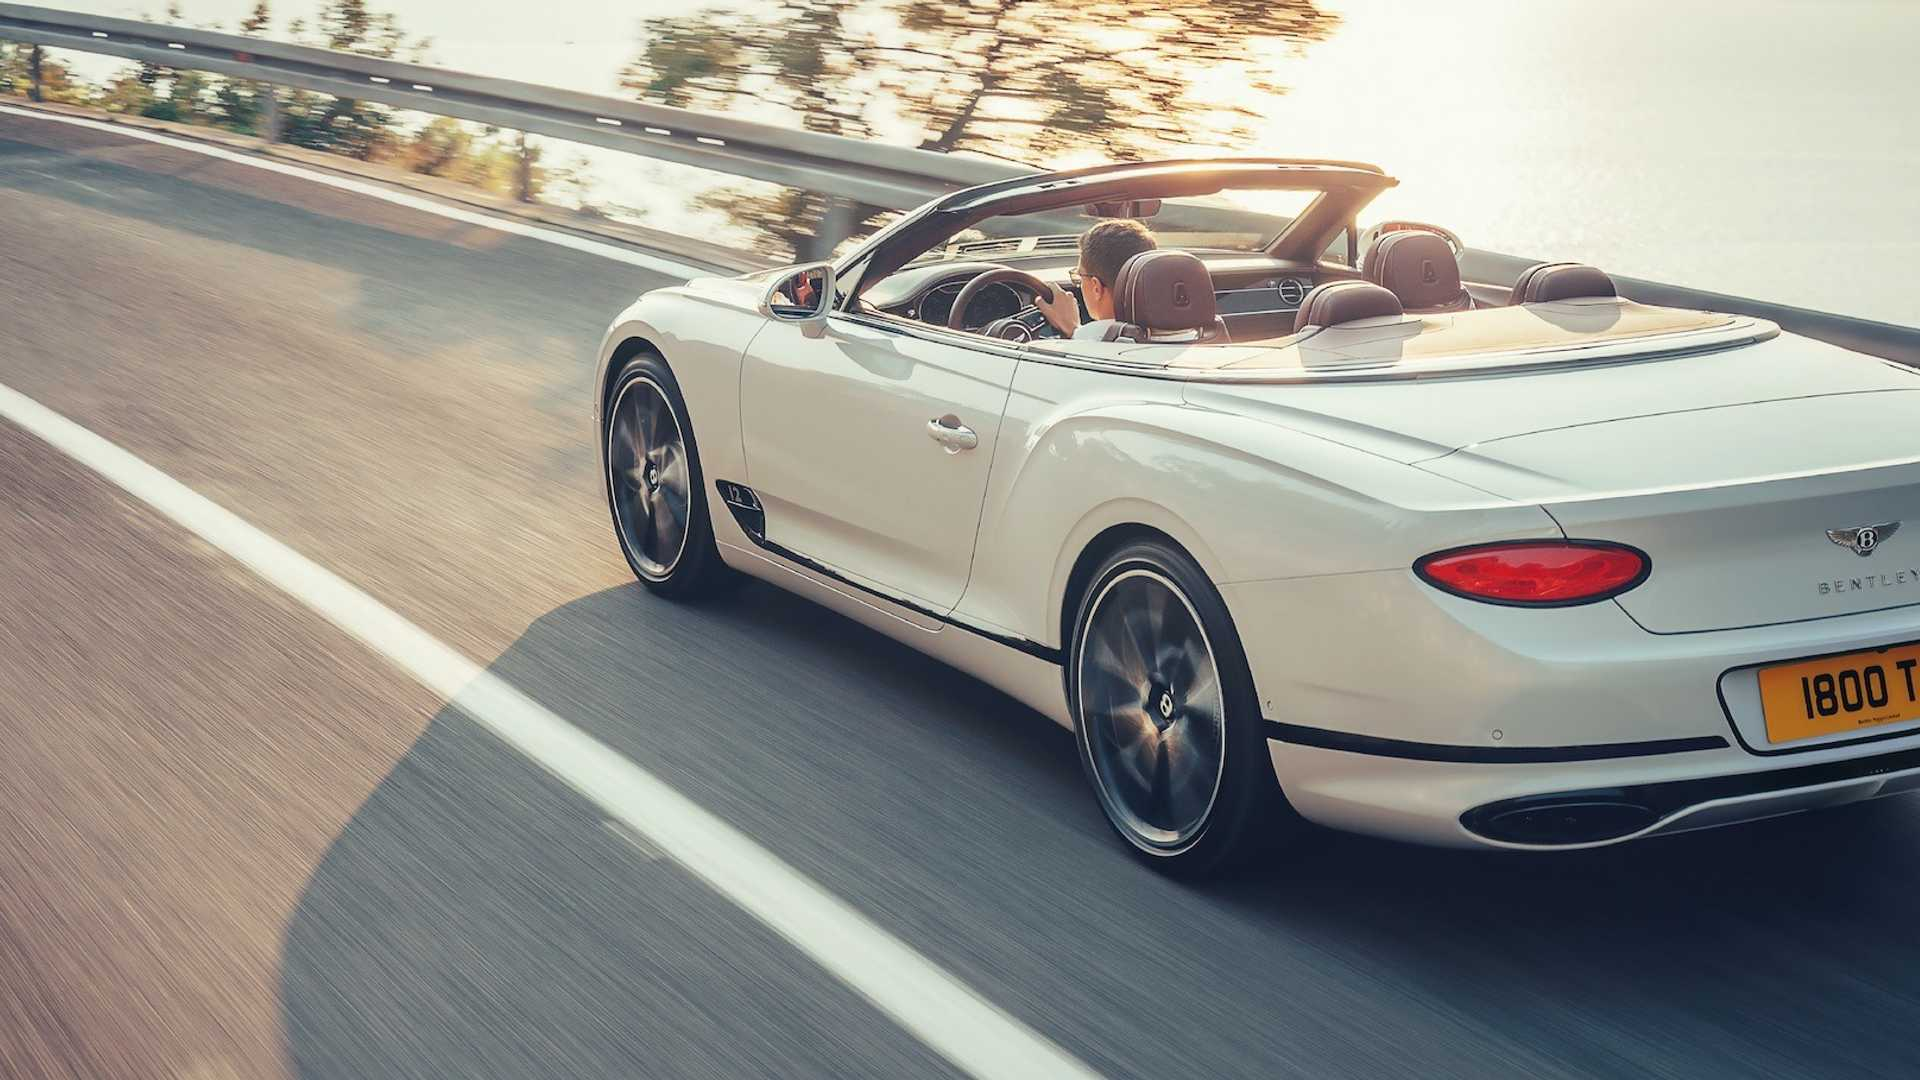 2019-bentley-continental-gt-convertible-unveiled-207-mph-luxury-droptop (15)